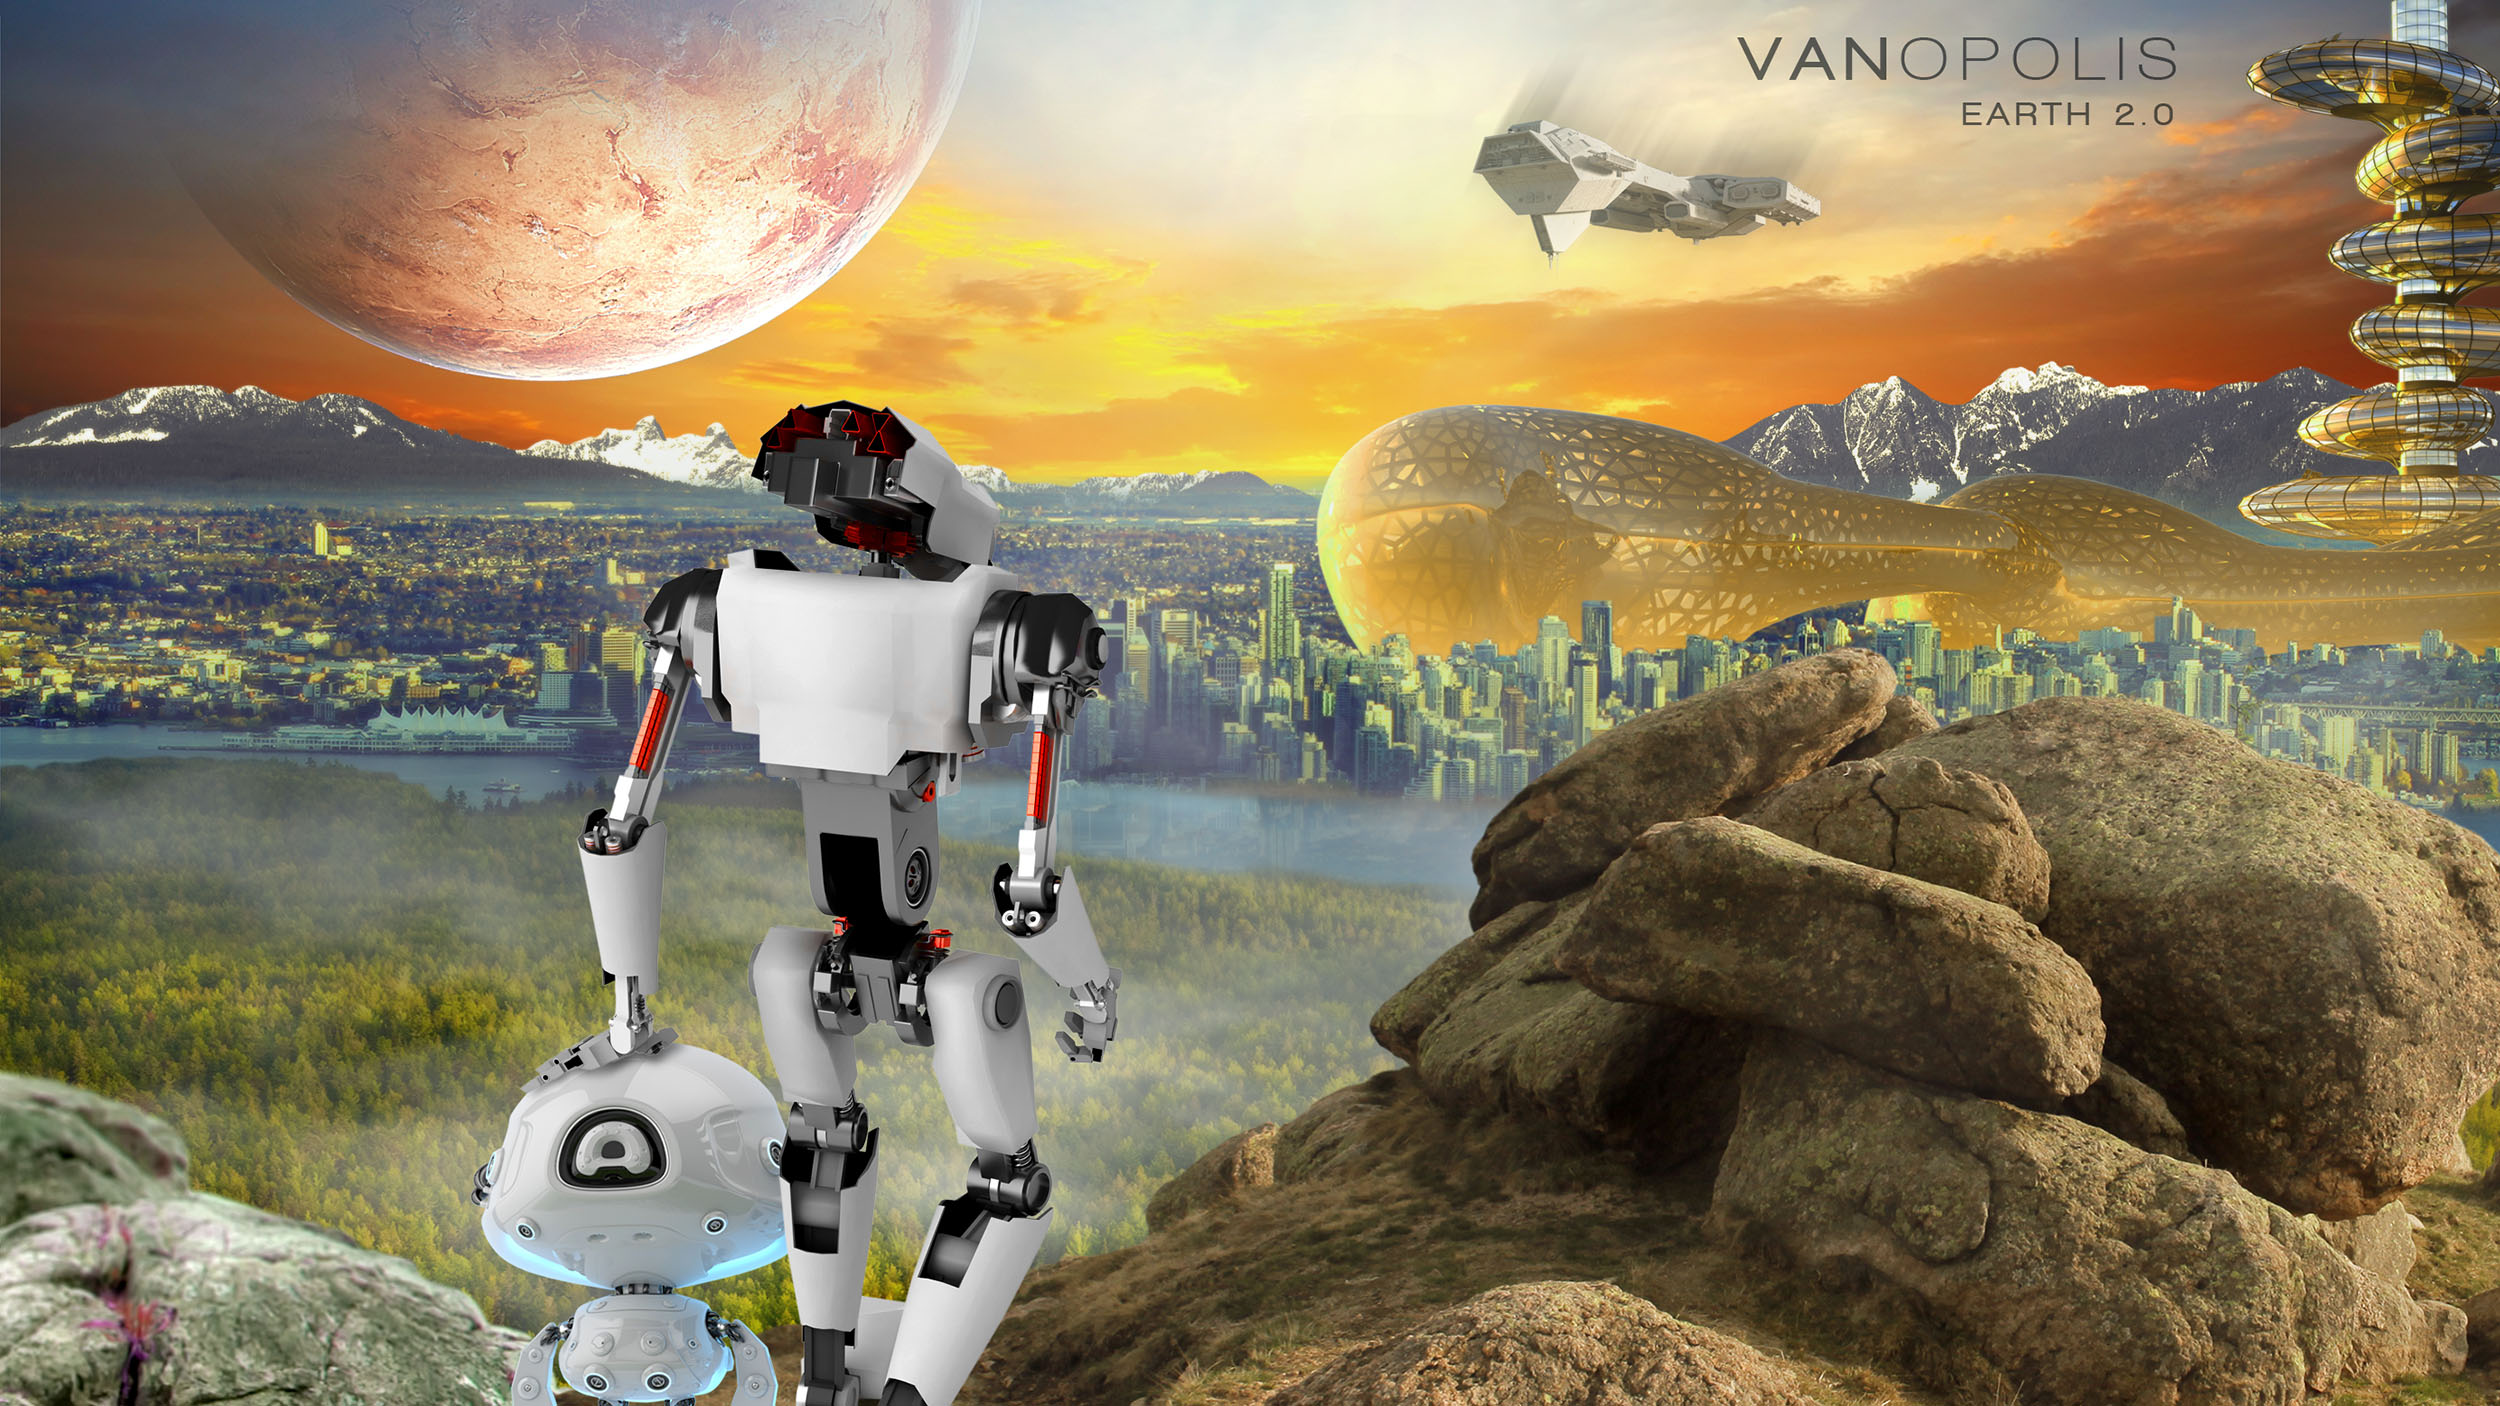 Vanopolis Earth 2.0 Wallpaper  Copyright © 2012-2017 460 Communications Inc. All rights reserved.  This design is intended strictly for portfolio use only and cannot be reproduced in any way with out written consent from 460 Communications Inc.  ·  Photoshop